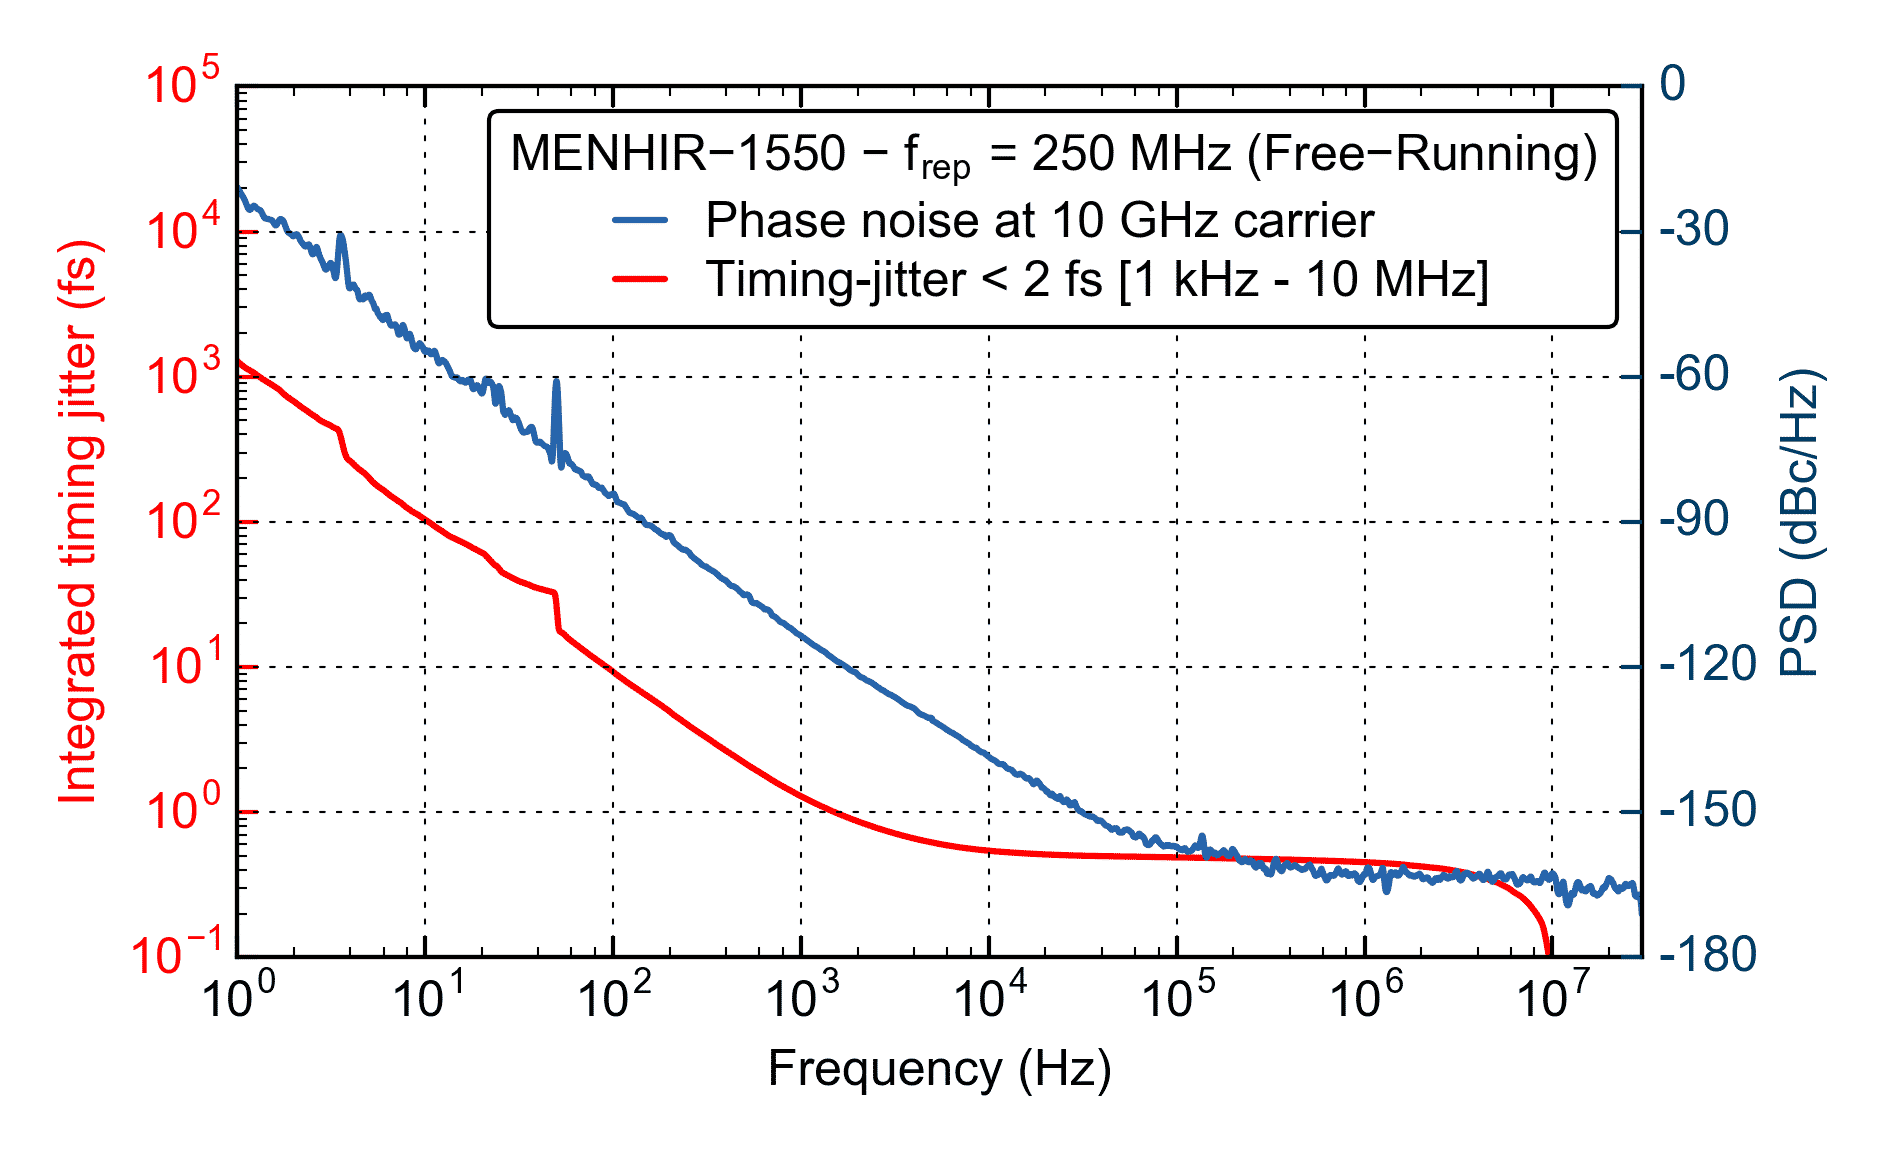 Phase noise & Timing-Jitter of a MENHIR-1550 at 250 MHz showing ultra-low noise performance